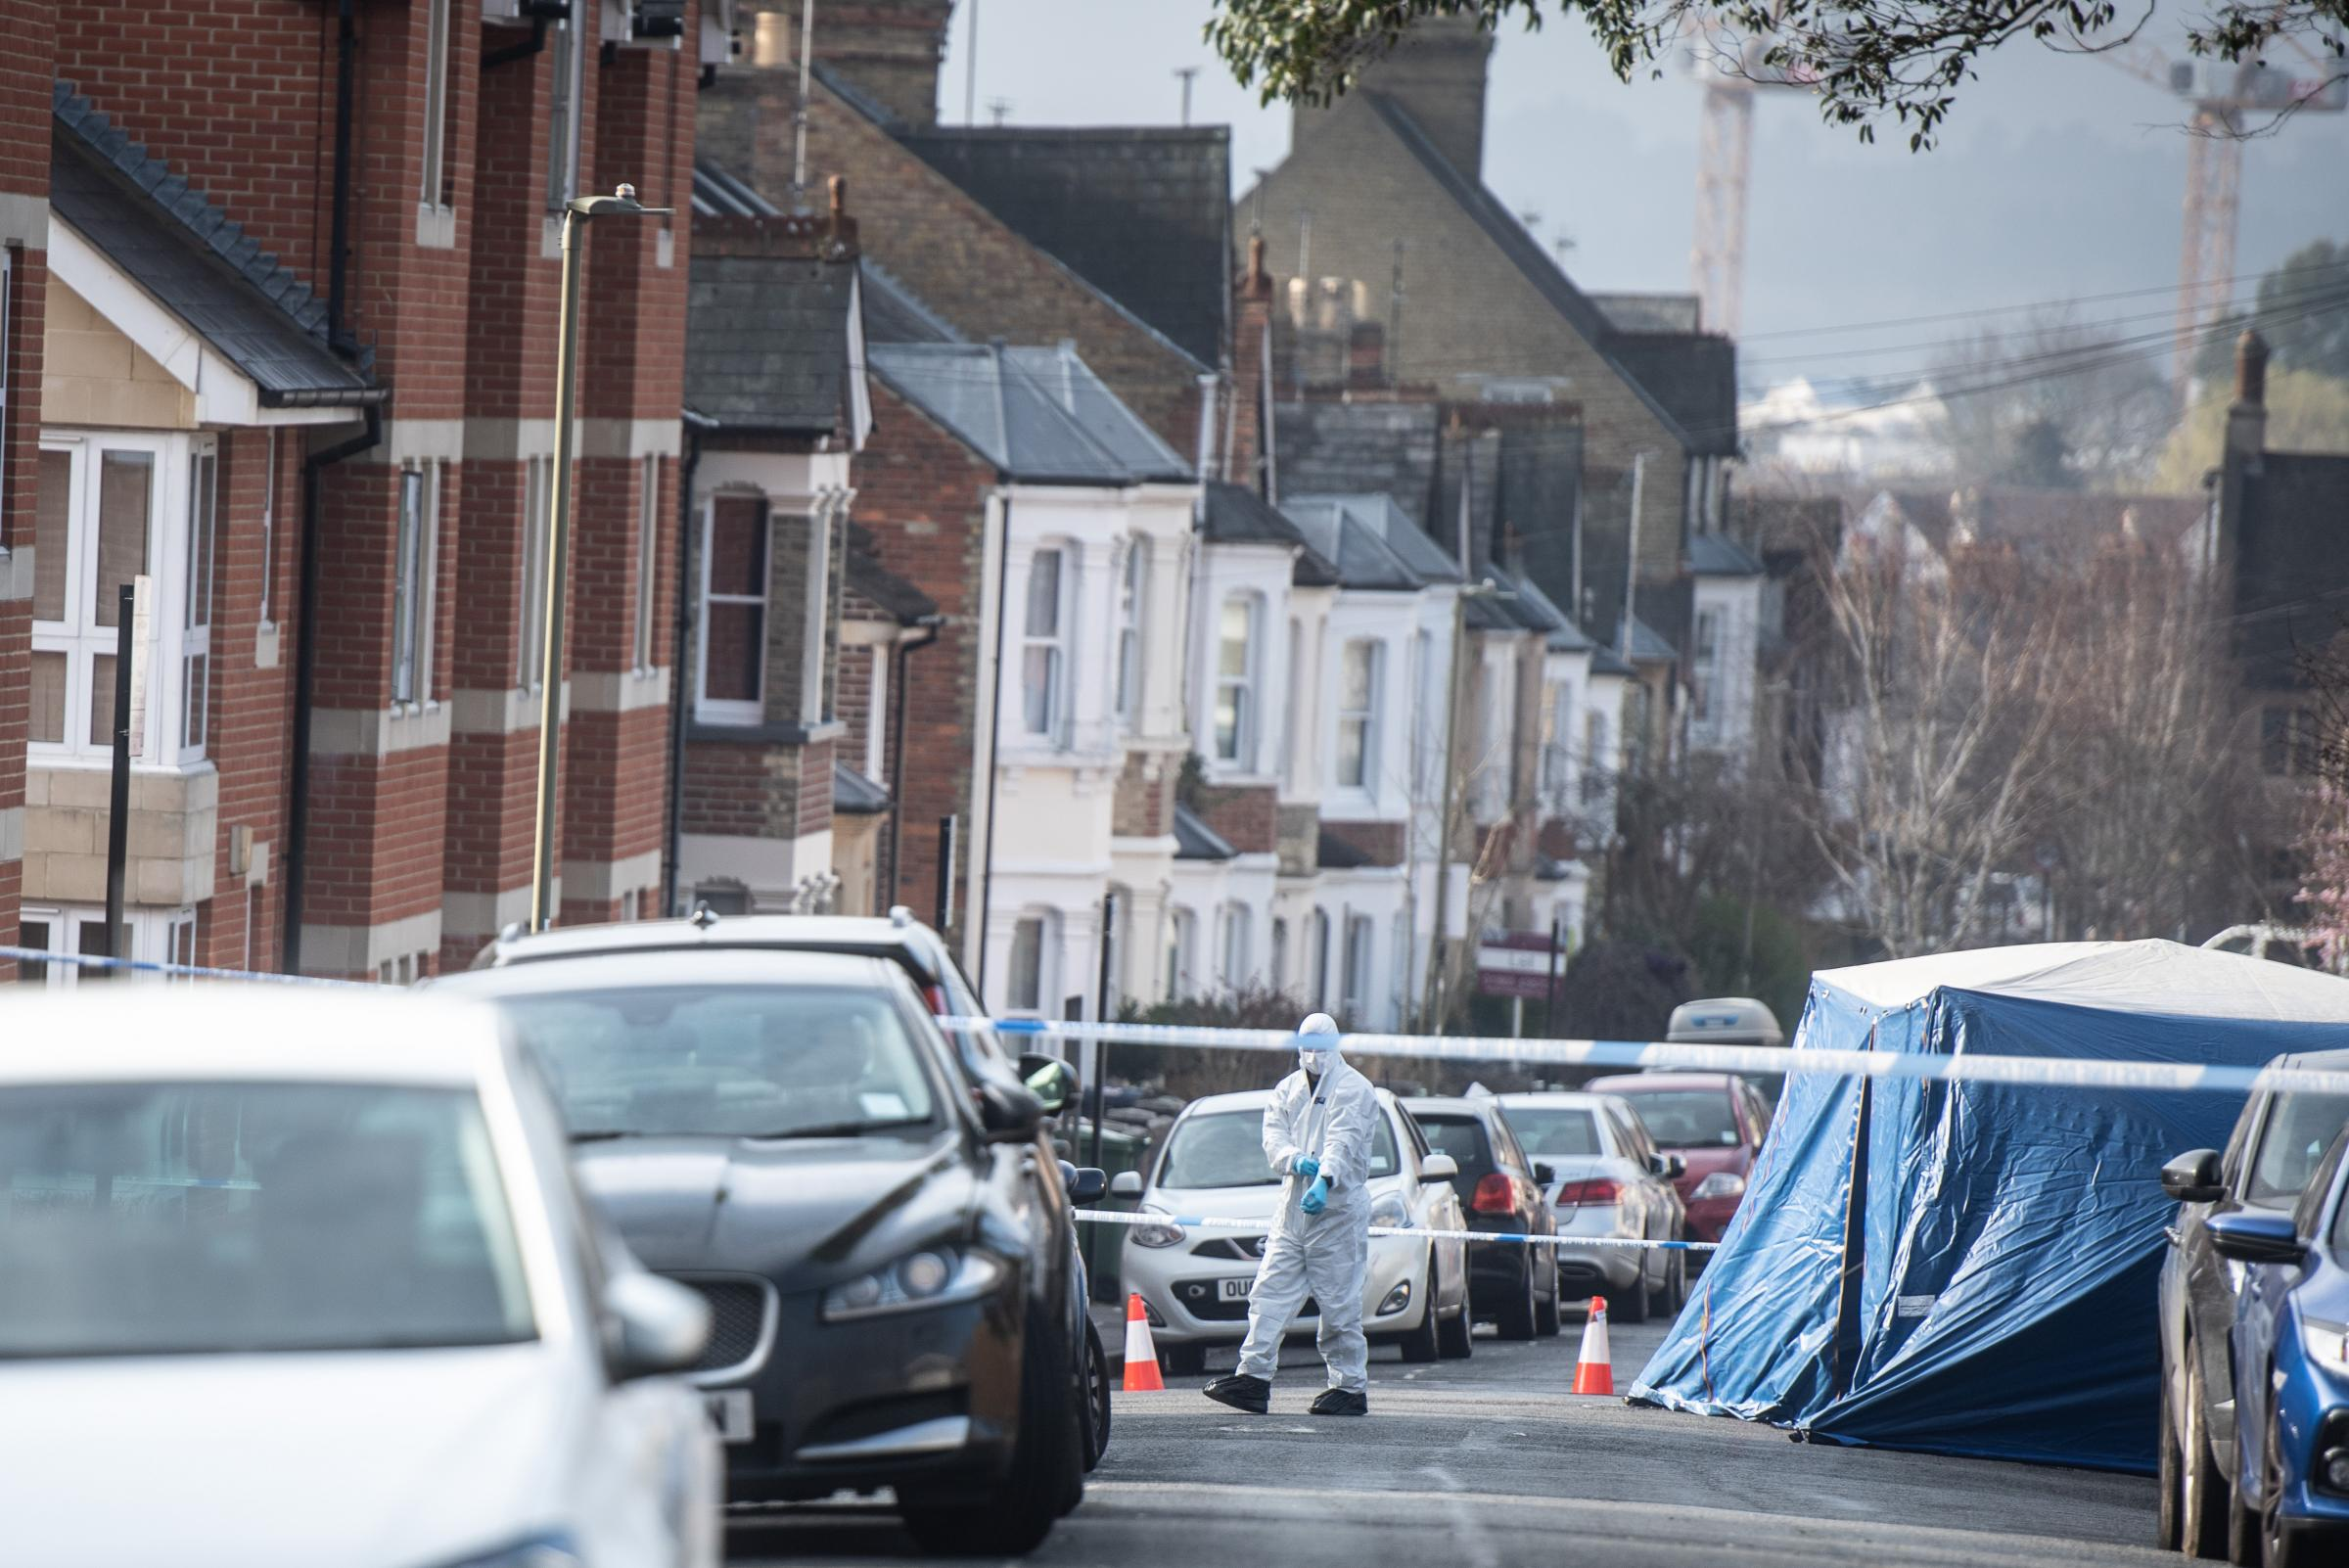 be5a5b3c958c OXFORD MURDER: 4 accused due in court today - Oxford news - NewsLocker